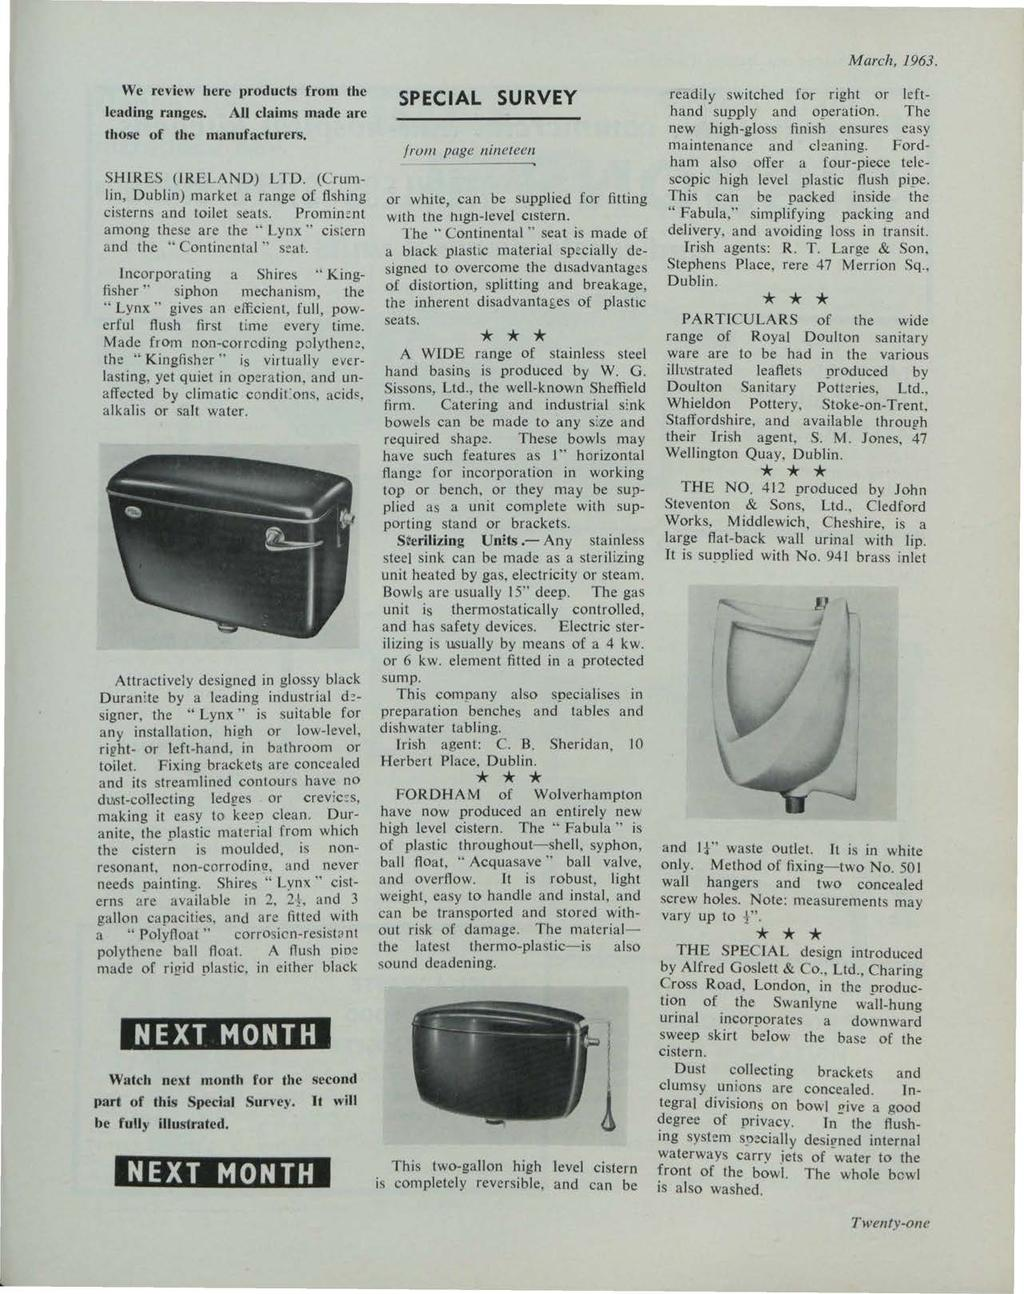 et al.: The Irish Plumber and Heating Contractor, March 1963 (complete is March, 1963. We review here products from the leading ranges. AU claims made arc those of the manufacturers.